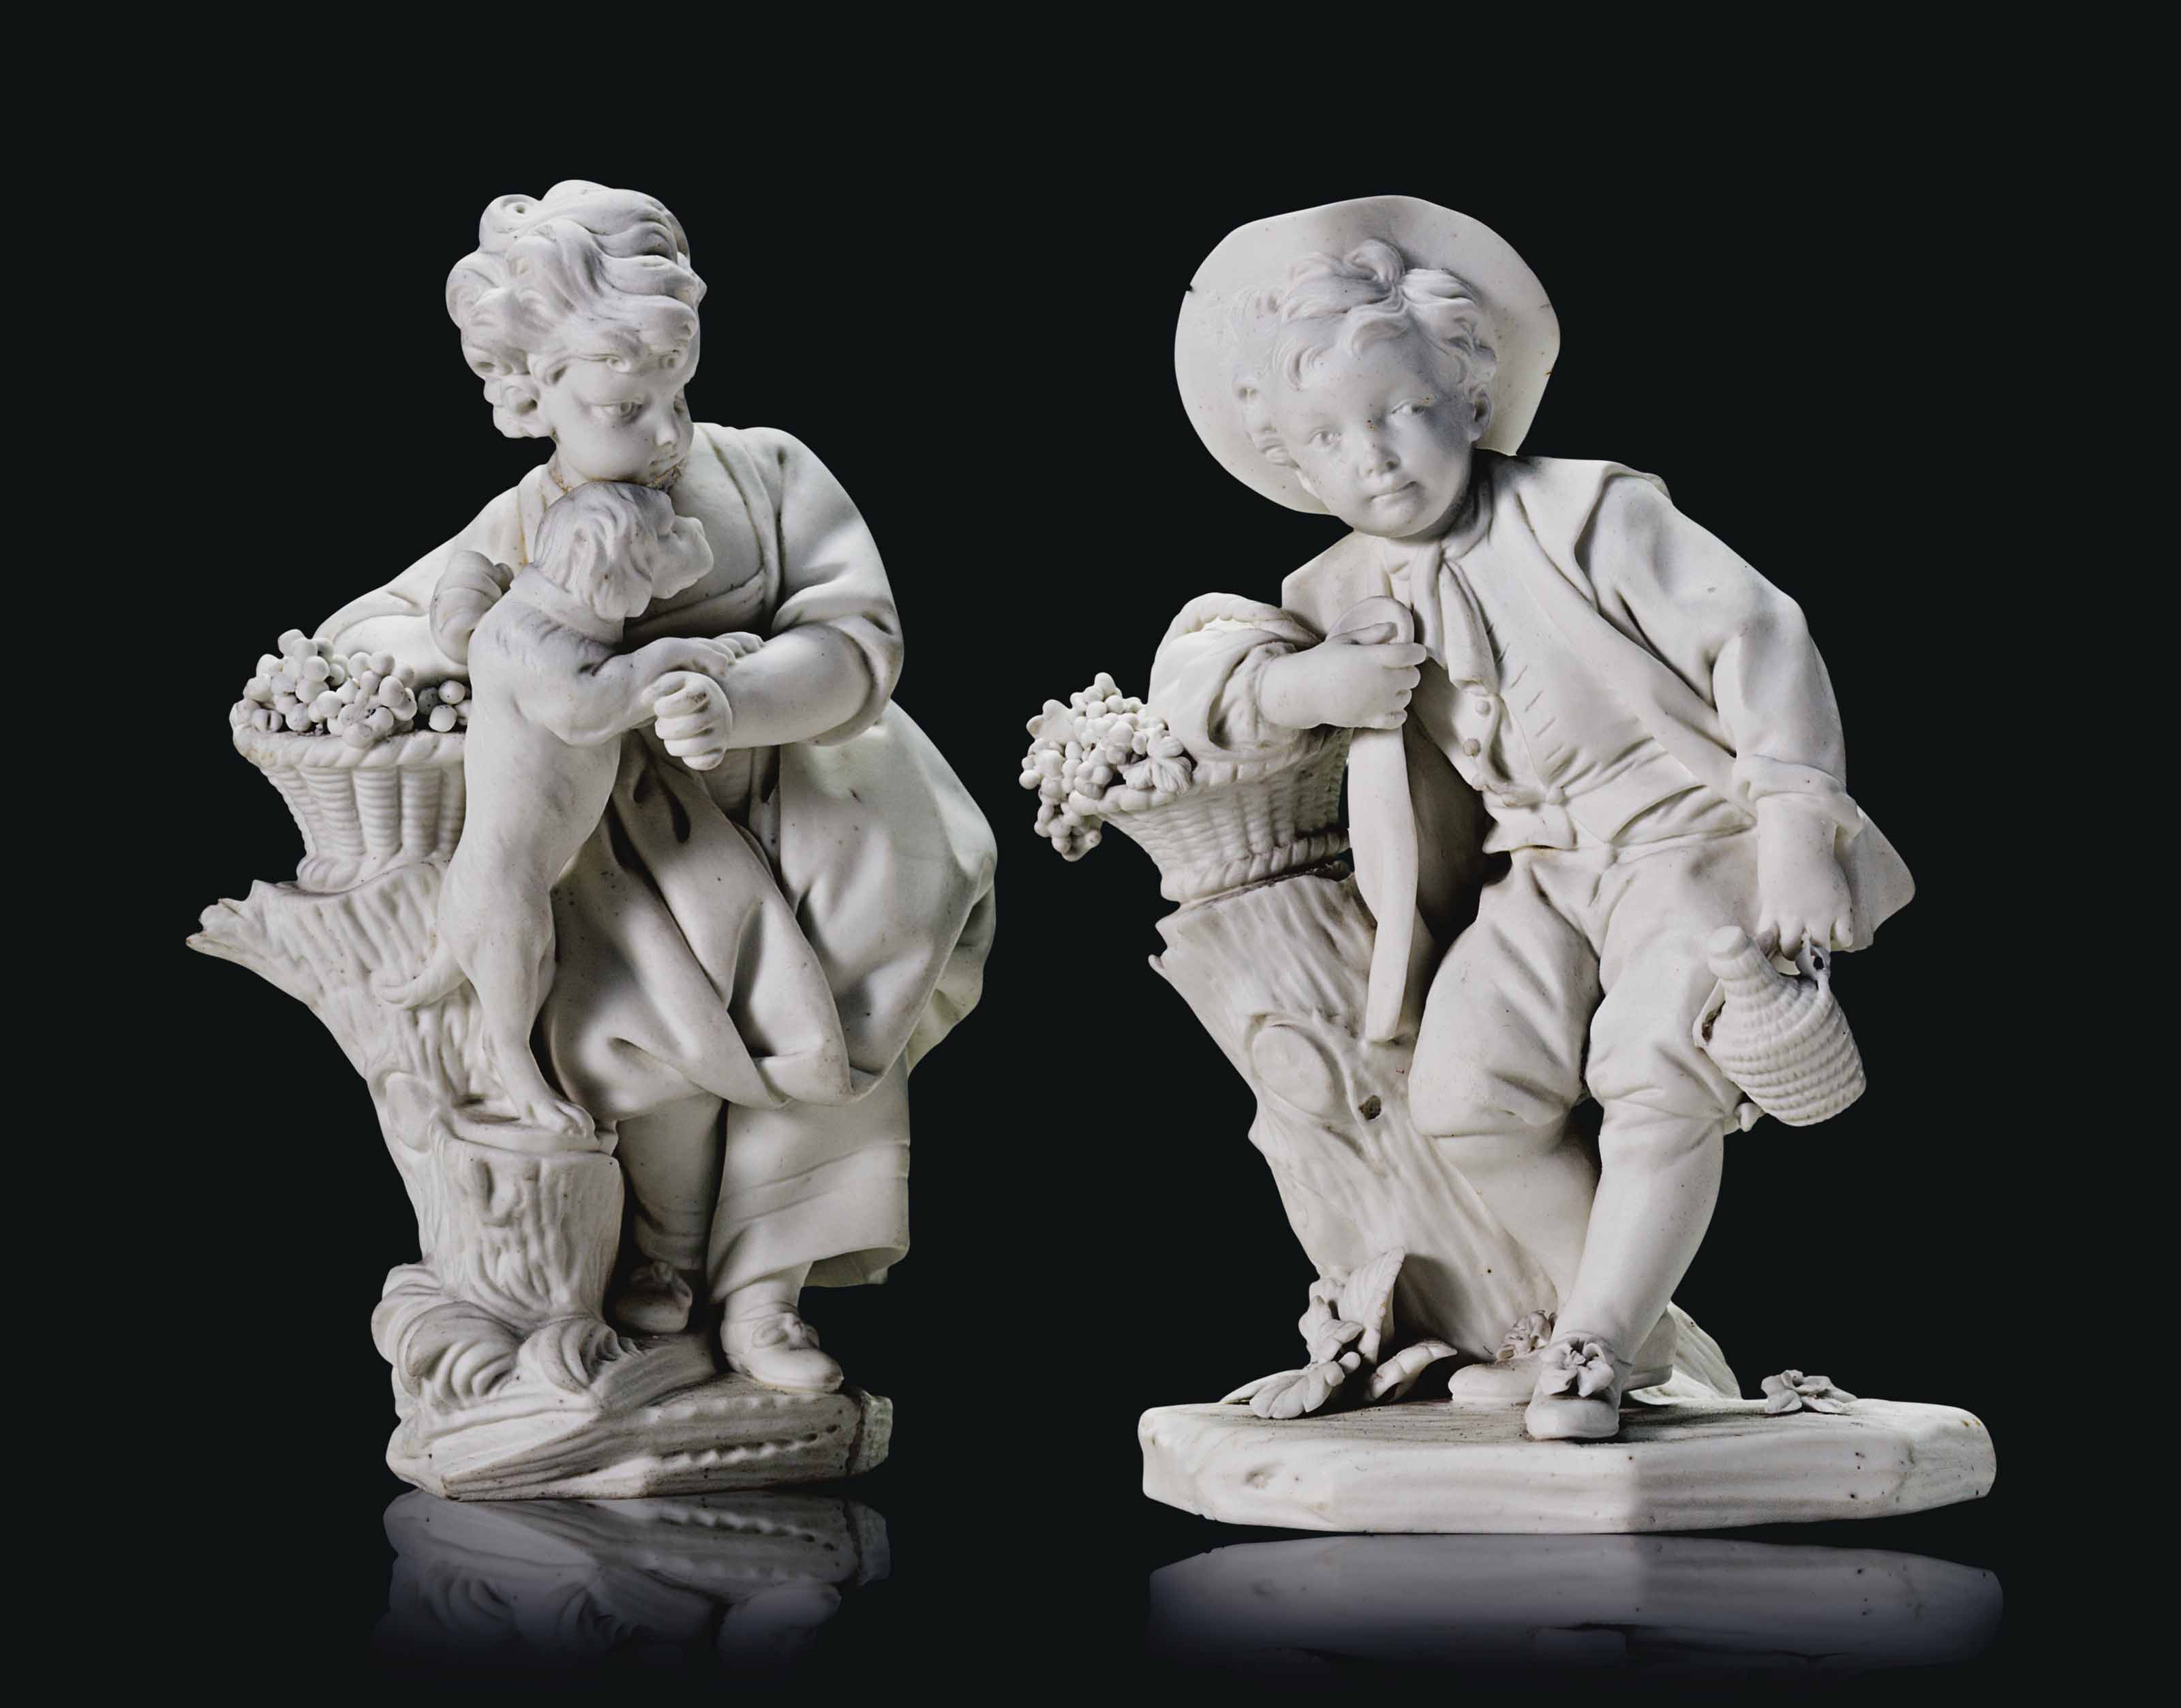 TWO SEVRES BISCUIT PORCELAIN F